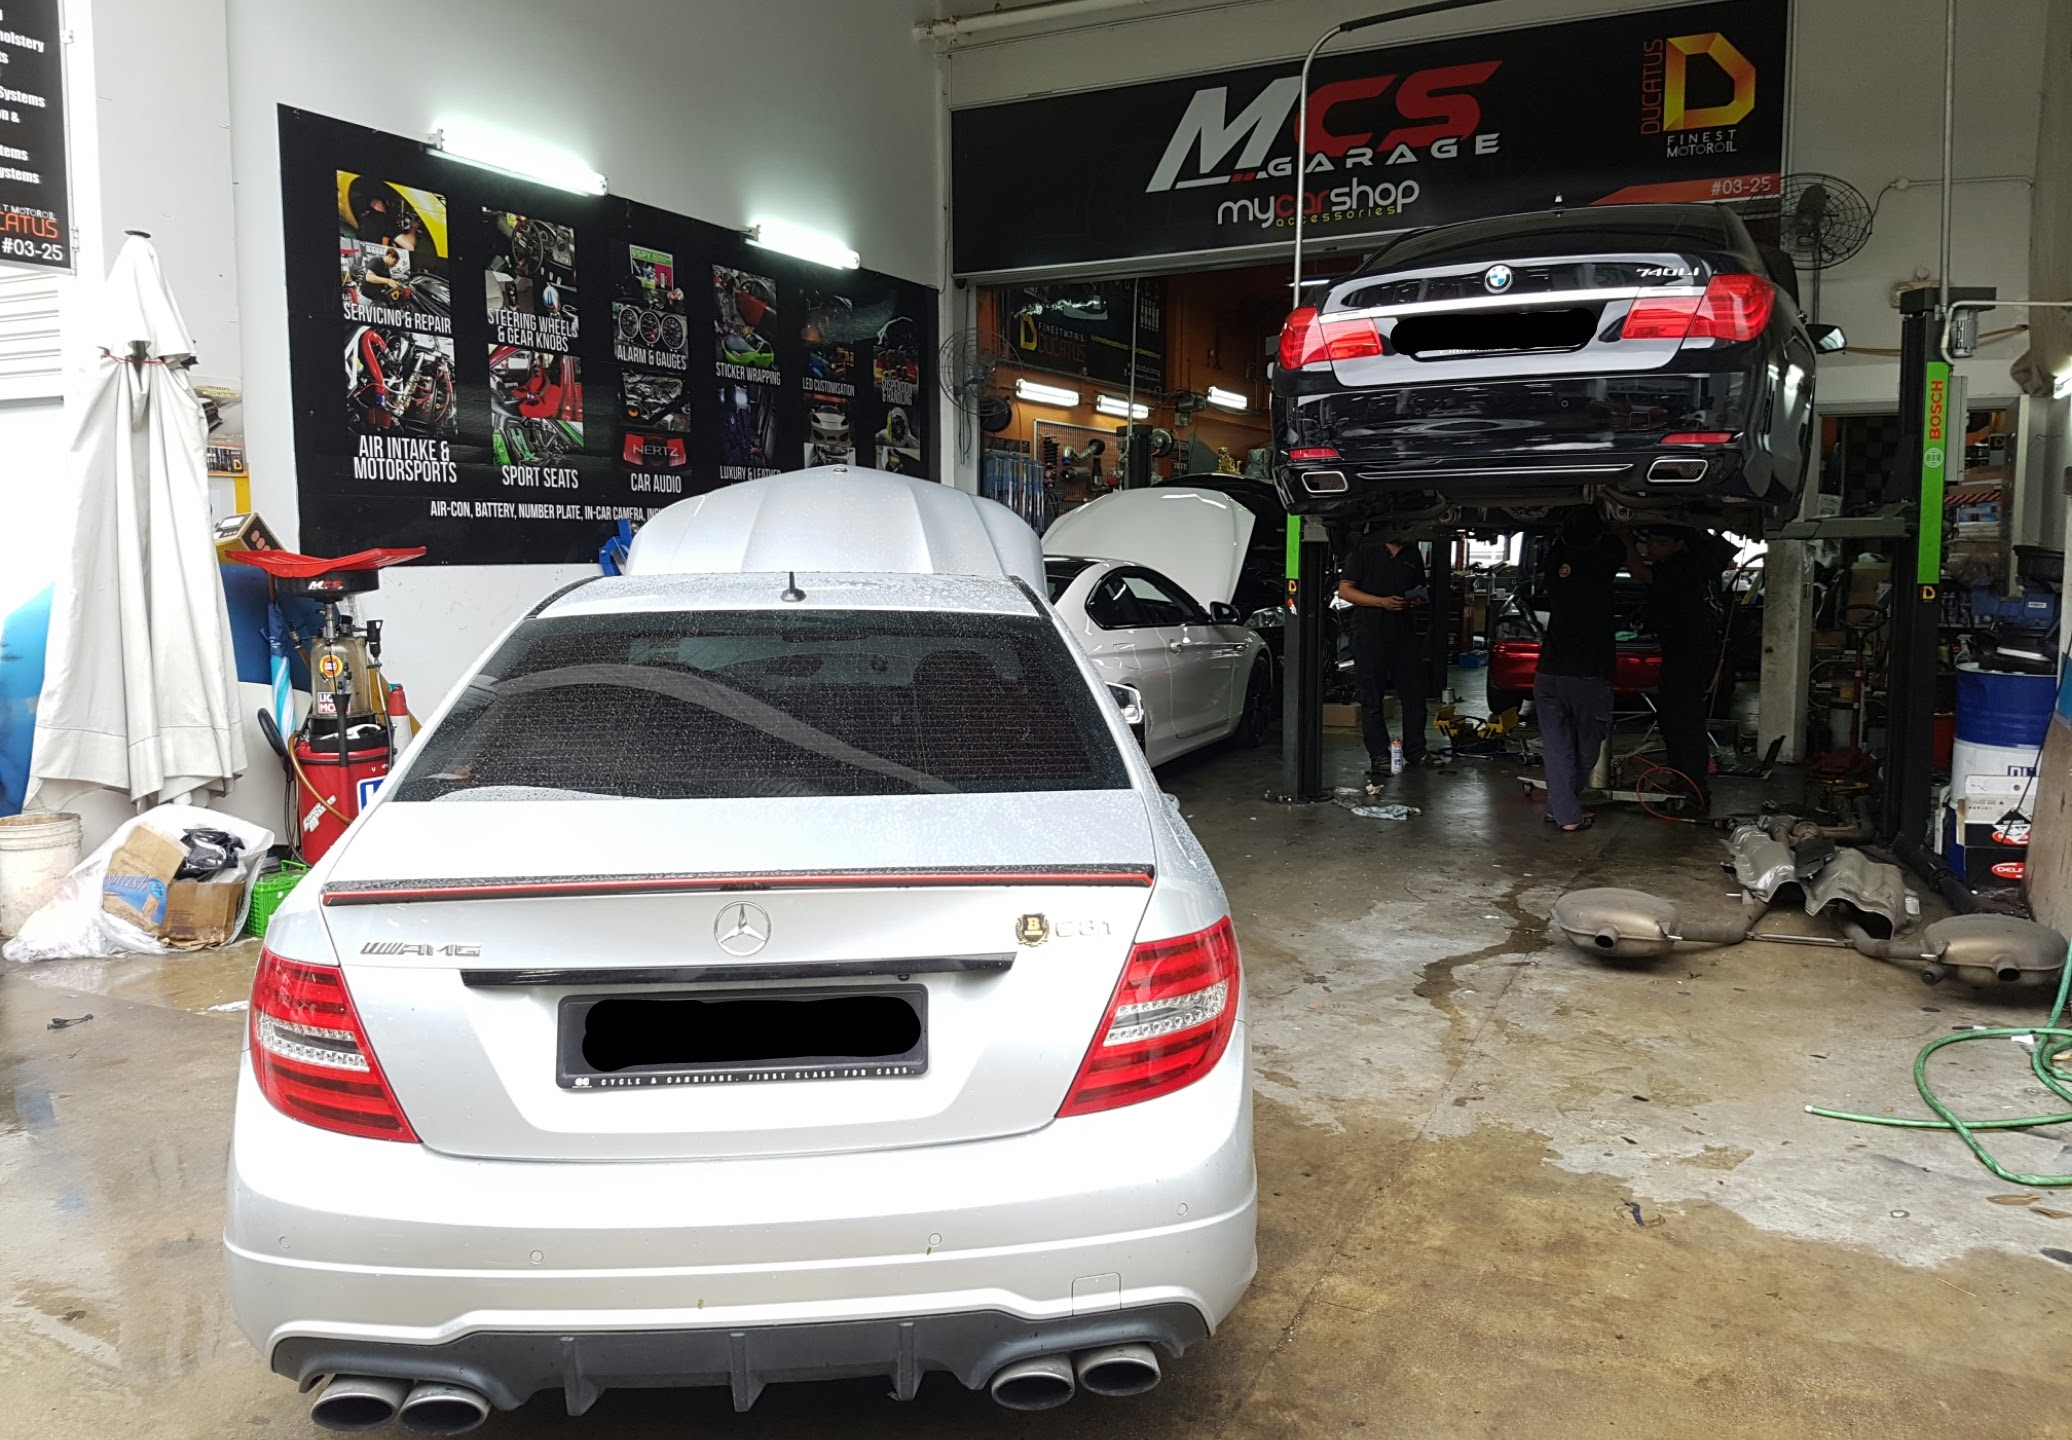 24hr car workshop singapore